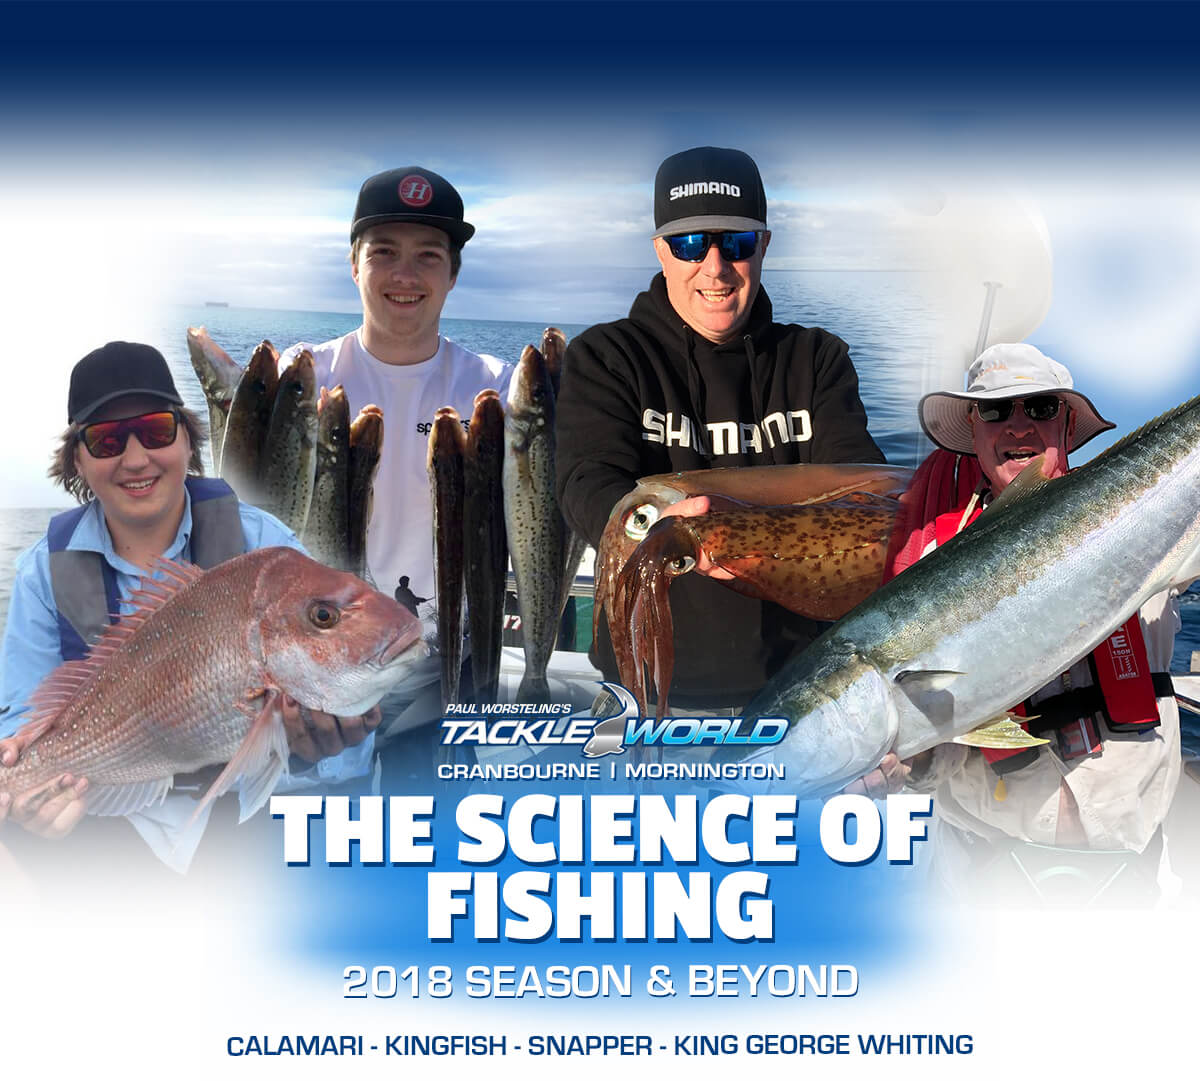 The Science of Fishing 2018